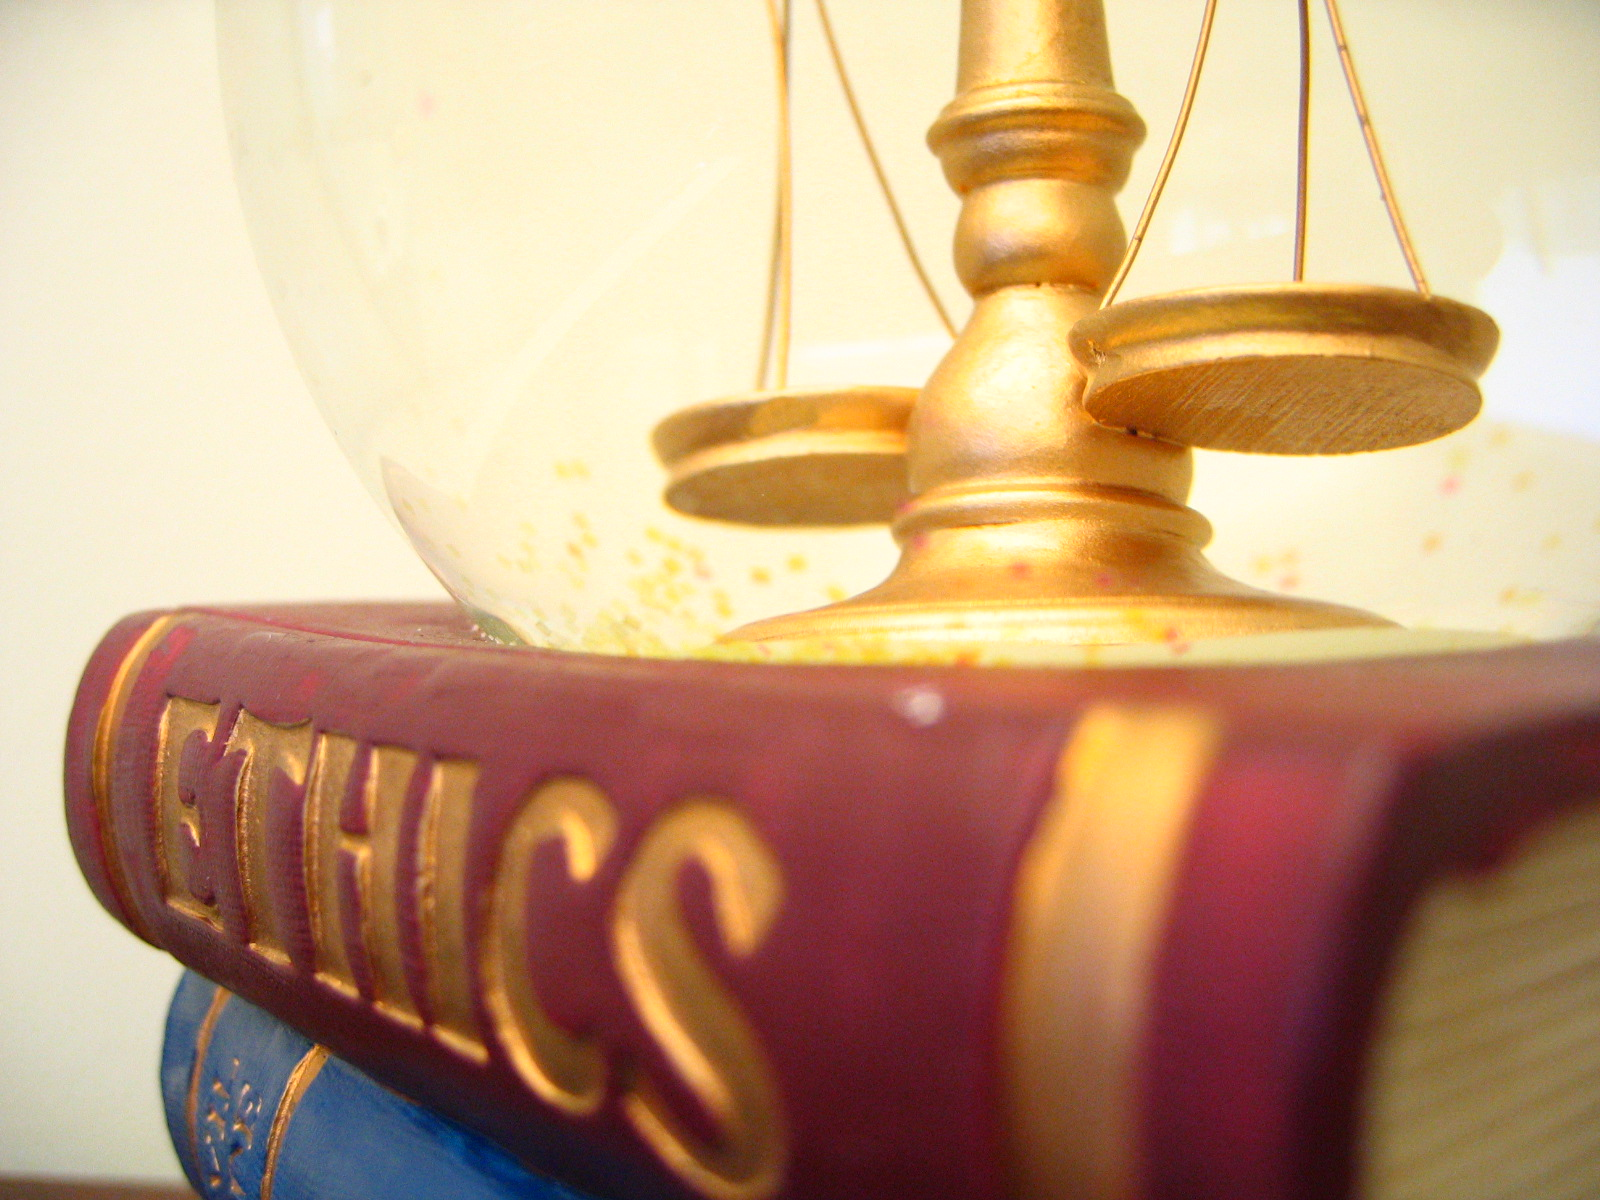 Our series: Ethics in Business – Are we aware of the 'Iagos' in our midst?